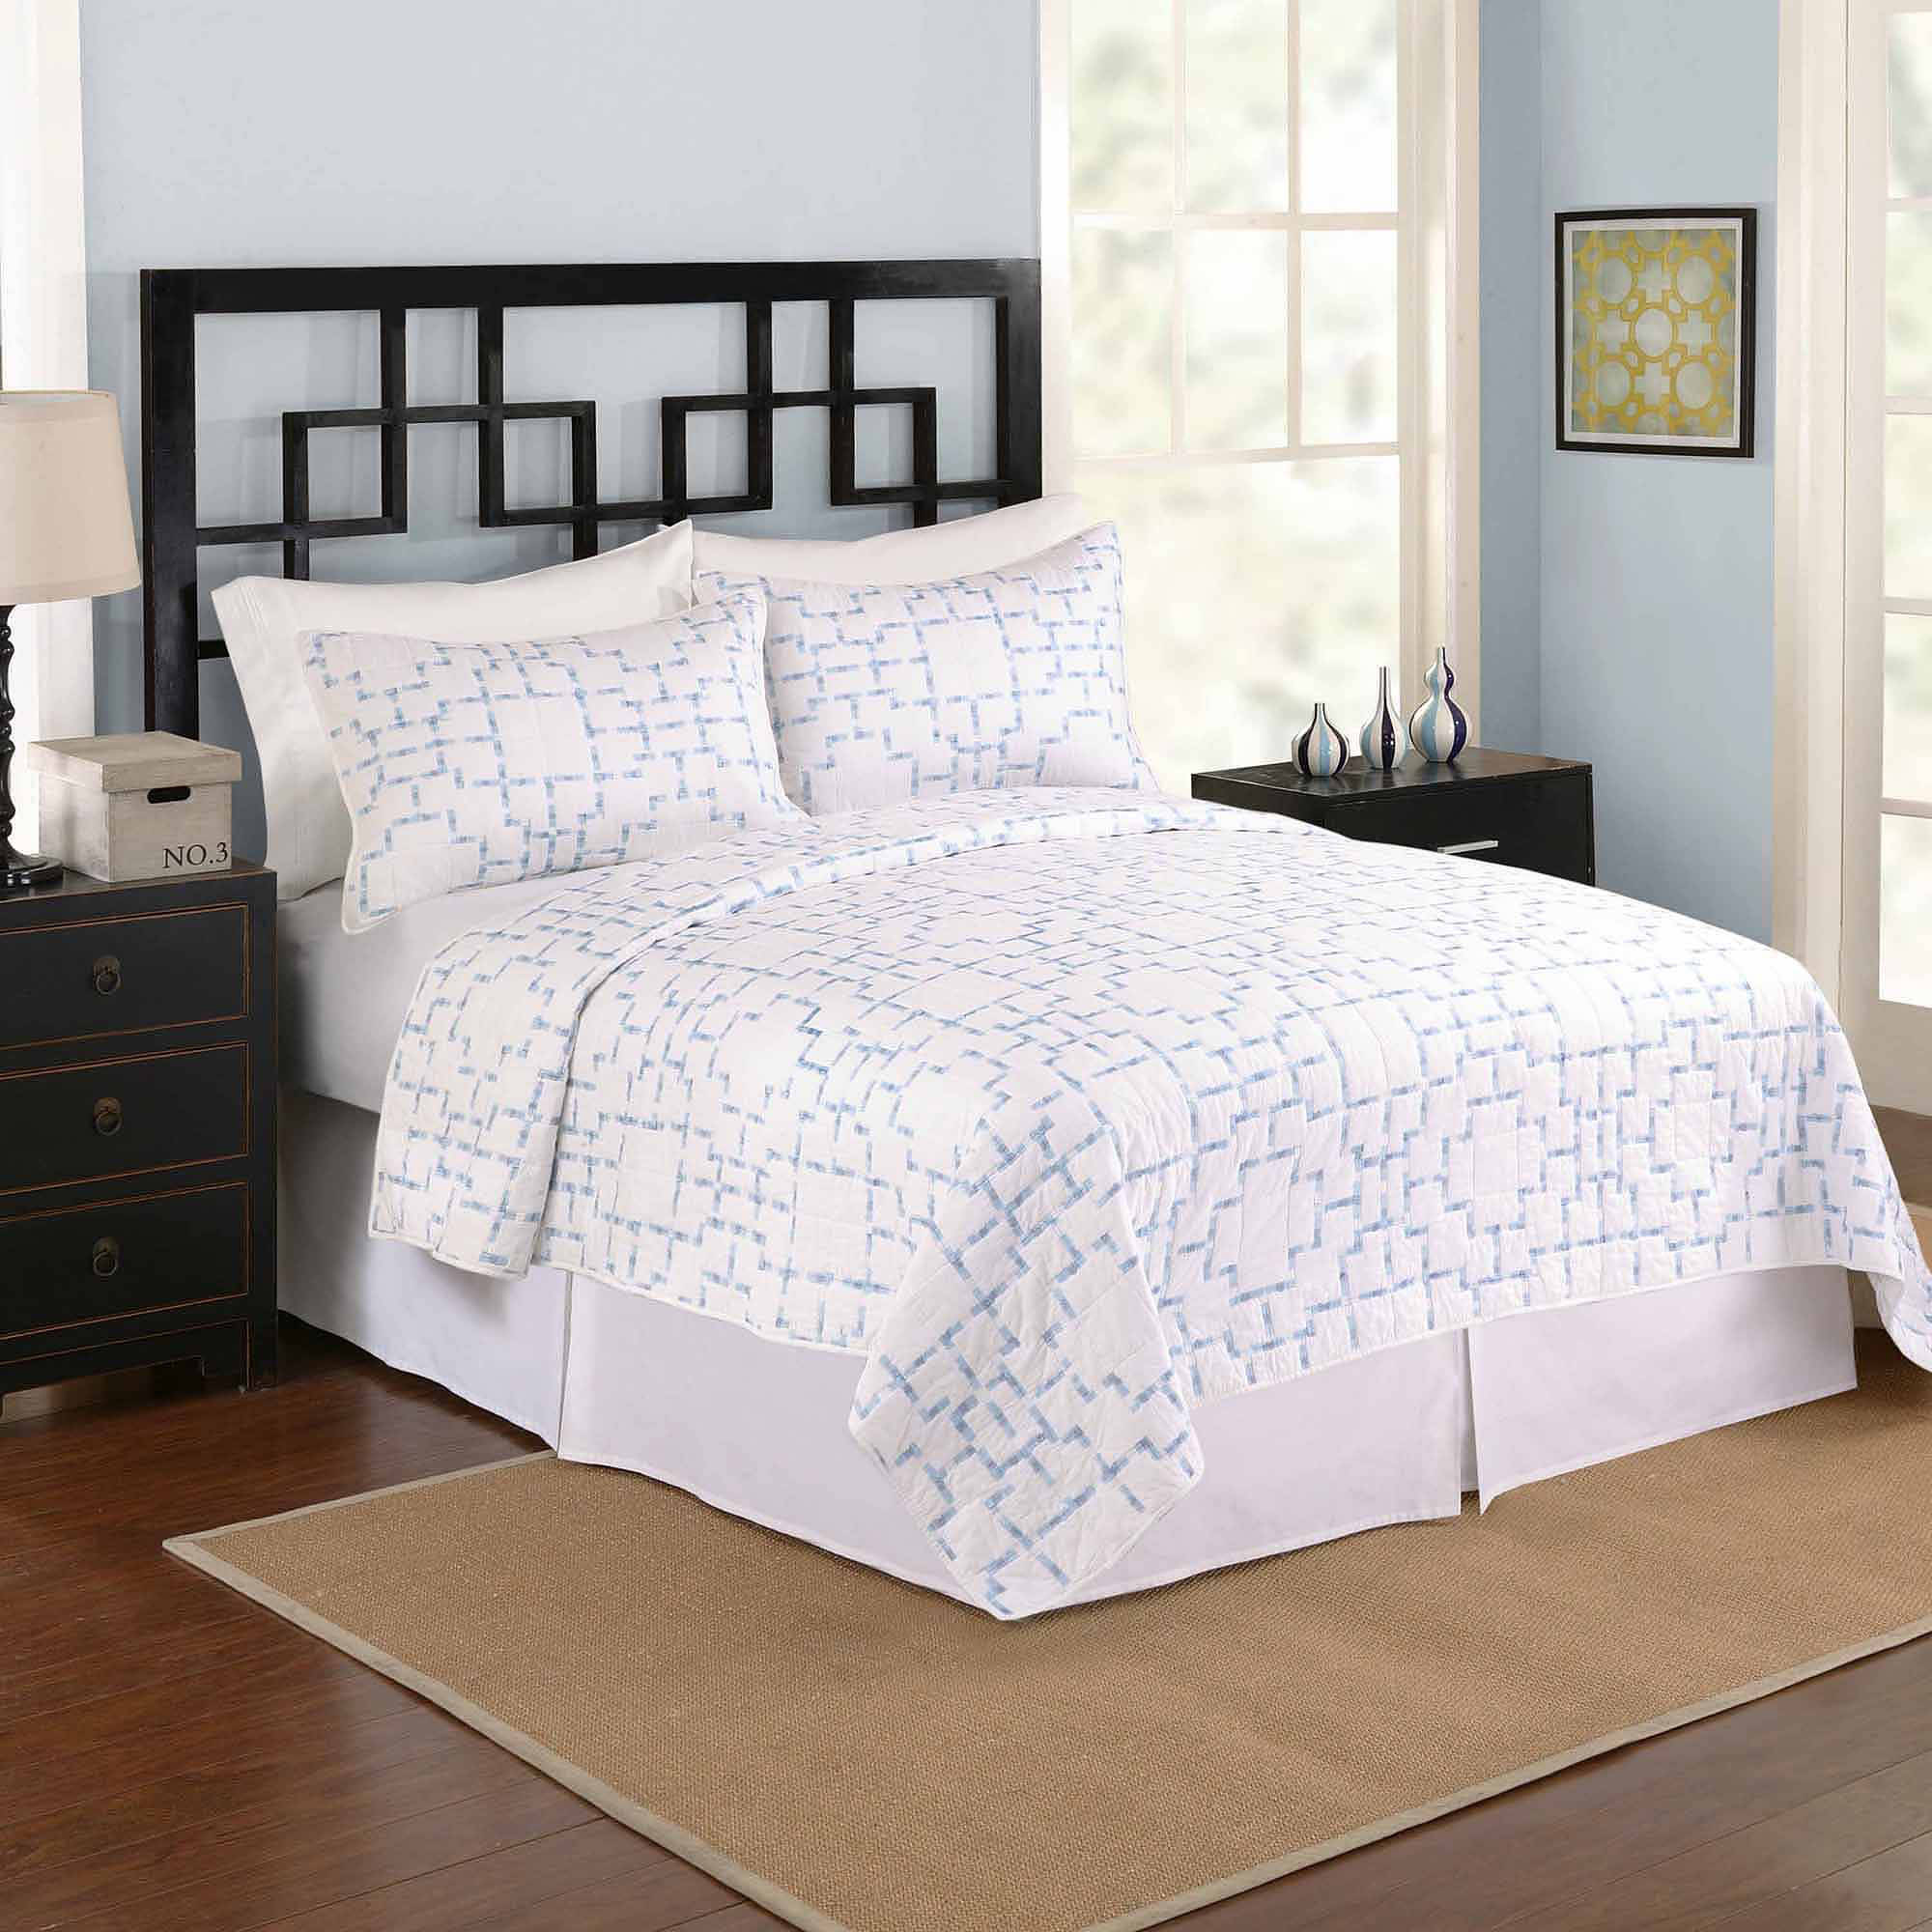 Click here to buy Better Homes and Gardens Easton Bedding Quilt, Blue White by Peking Handicraft Inc.